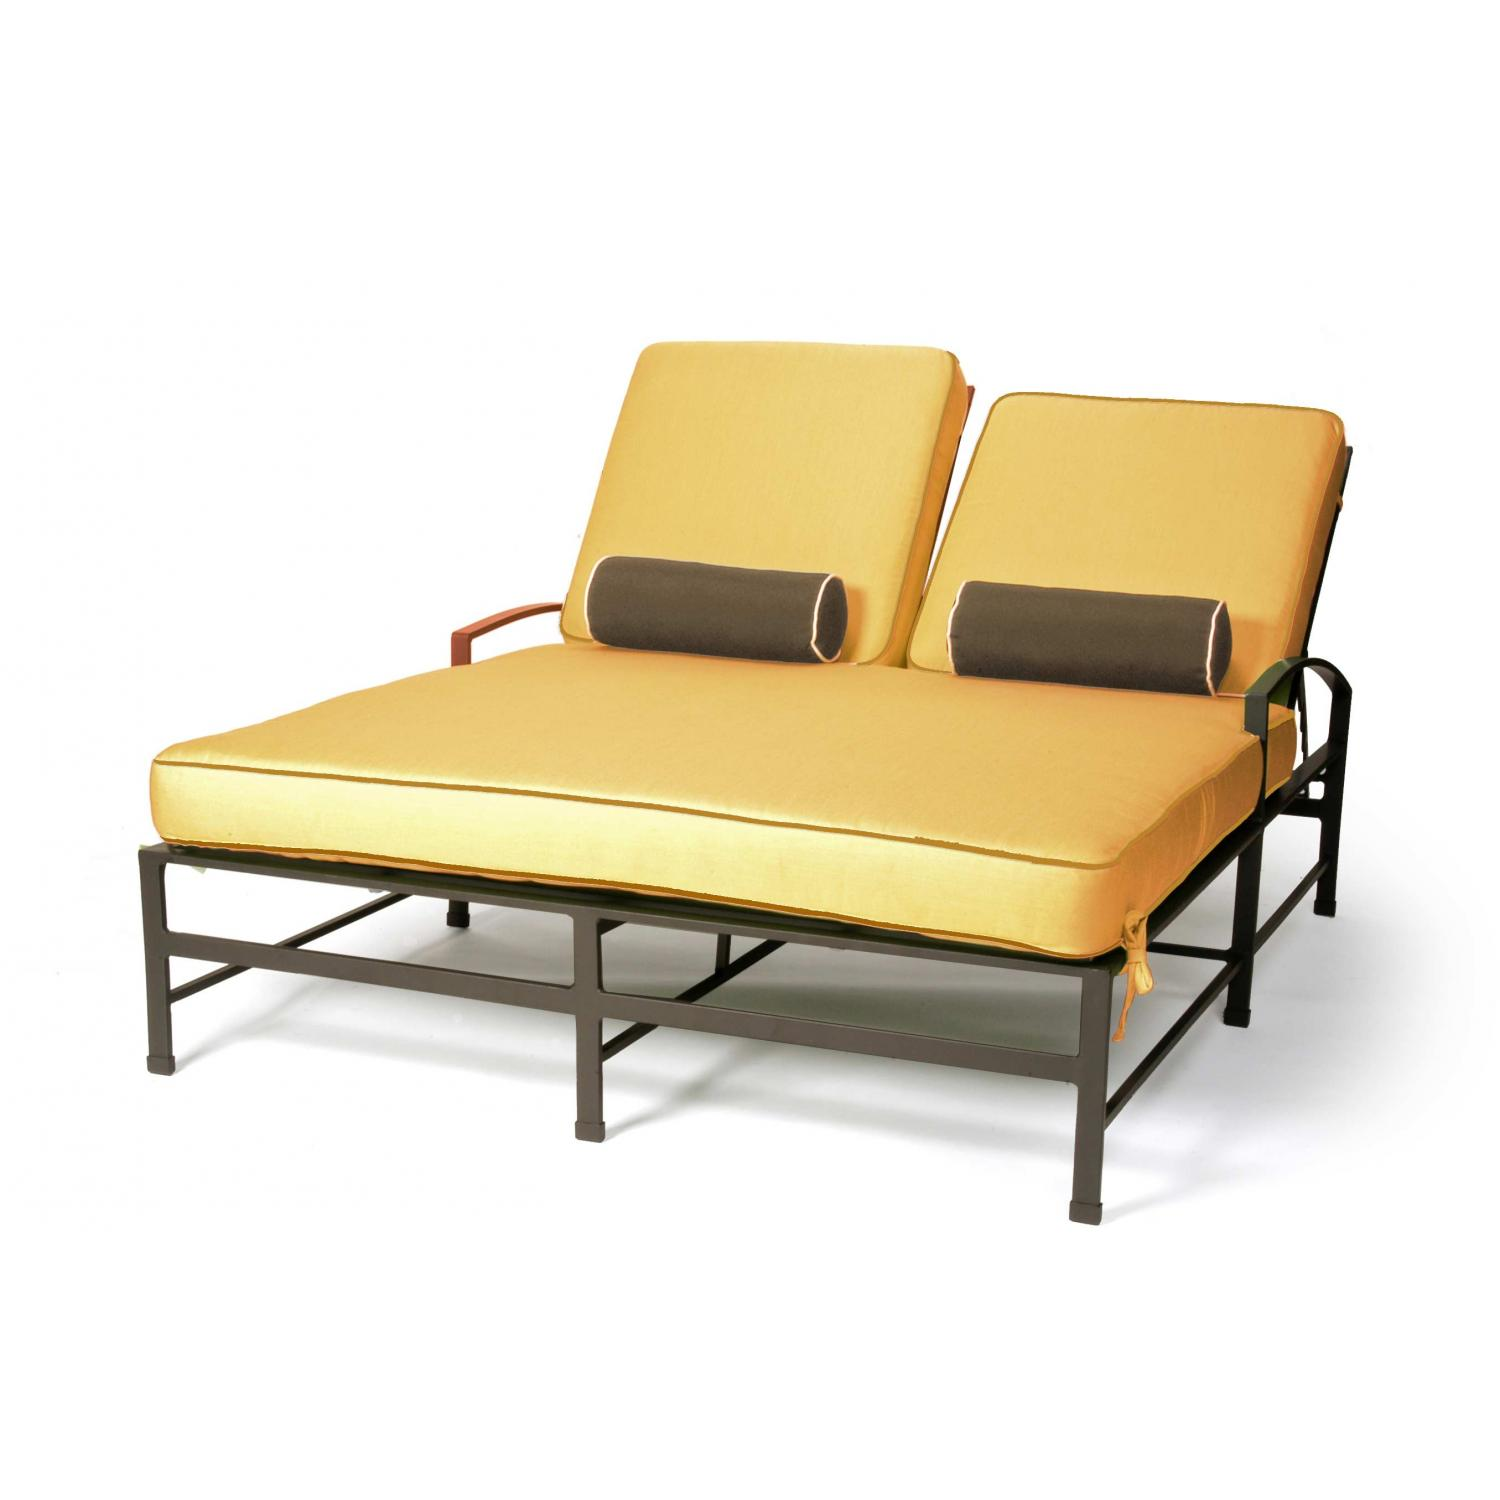 Caluco San Michele Aluminum Double Chaise Lounge